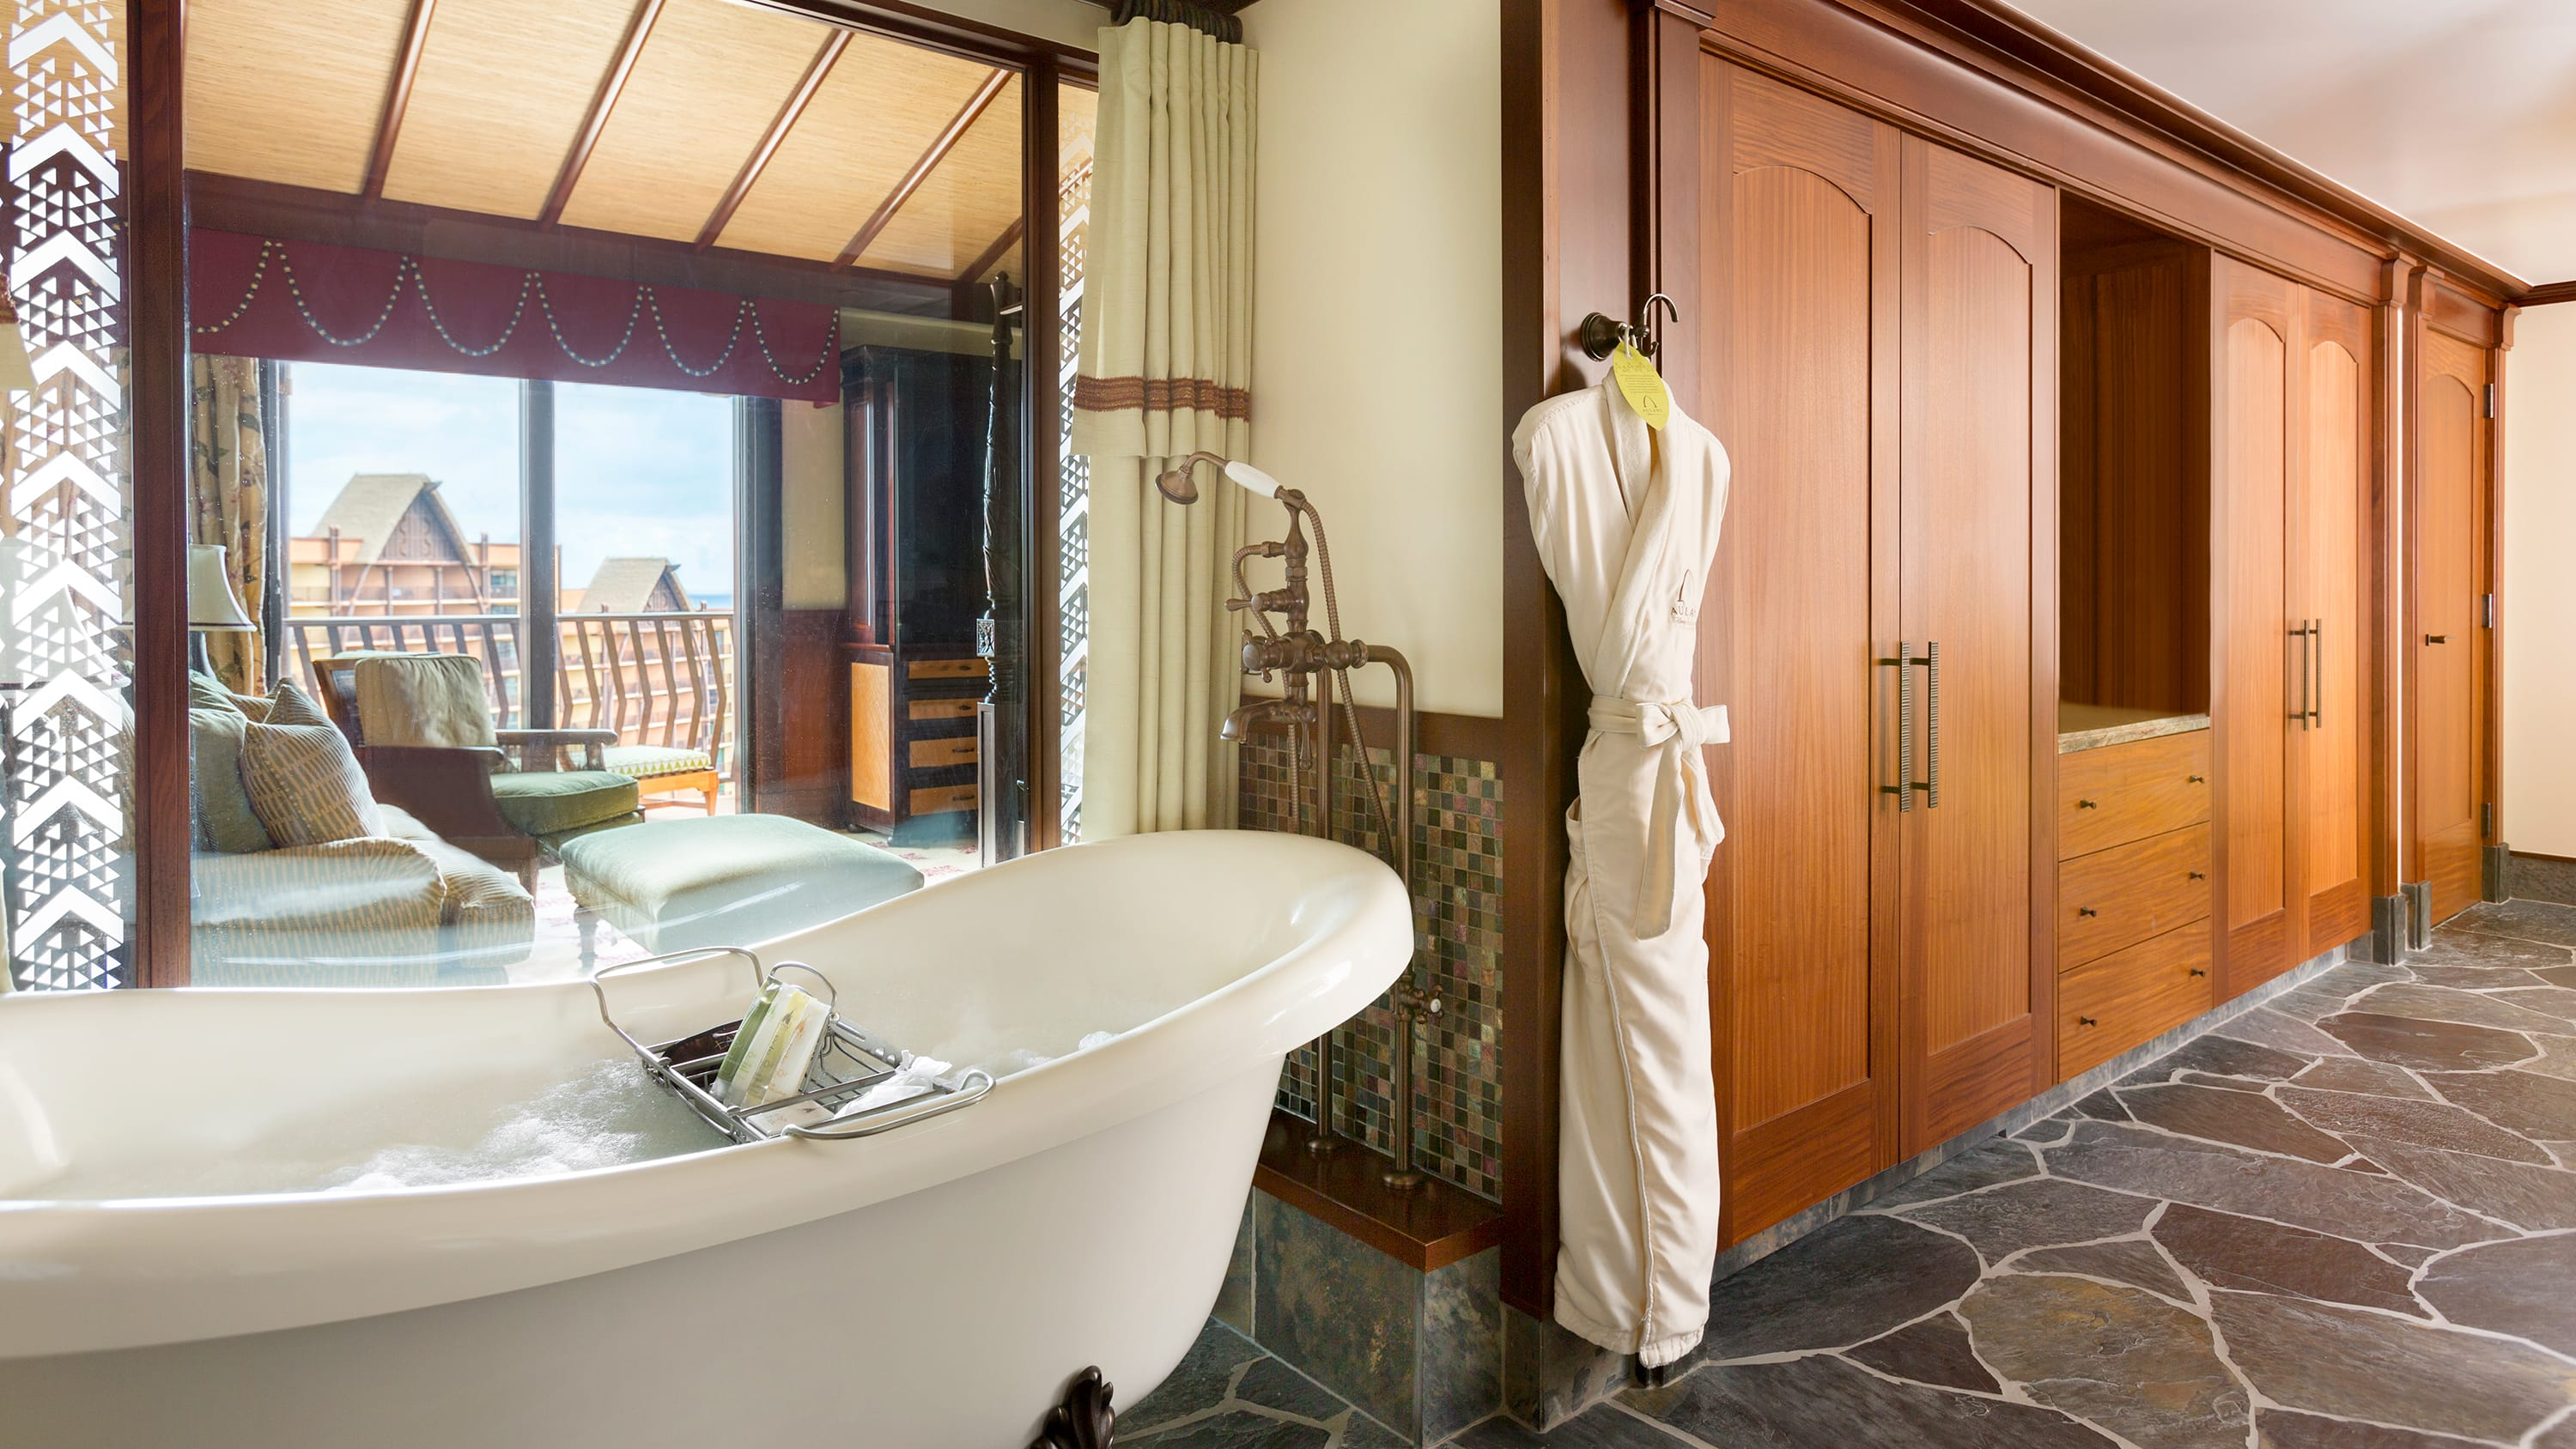 A robe, a bathtub and ashower near a window that looks into a room with a couch, a chair and balcony access